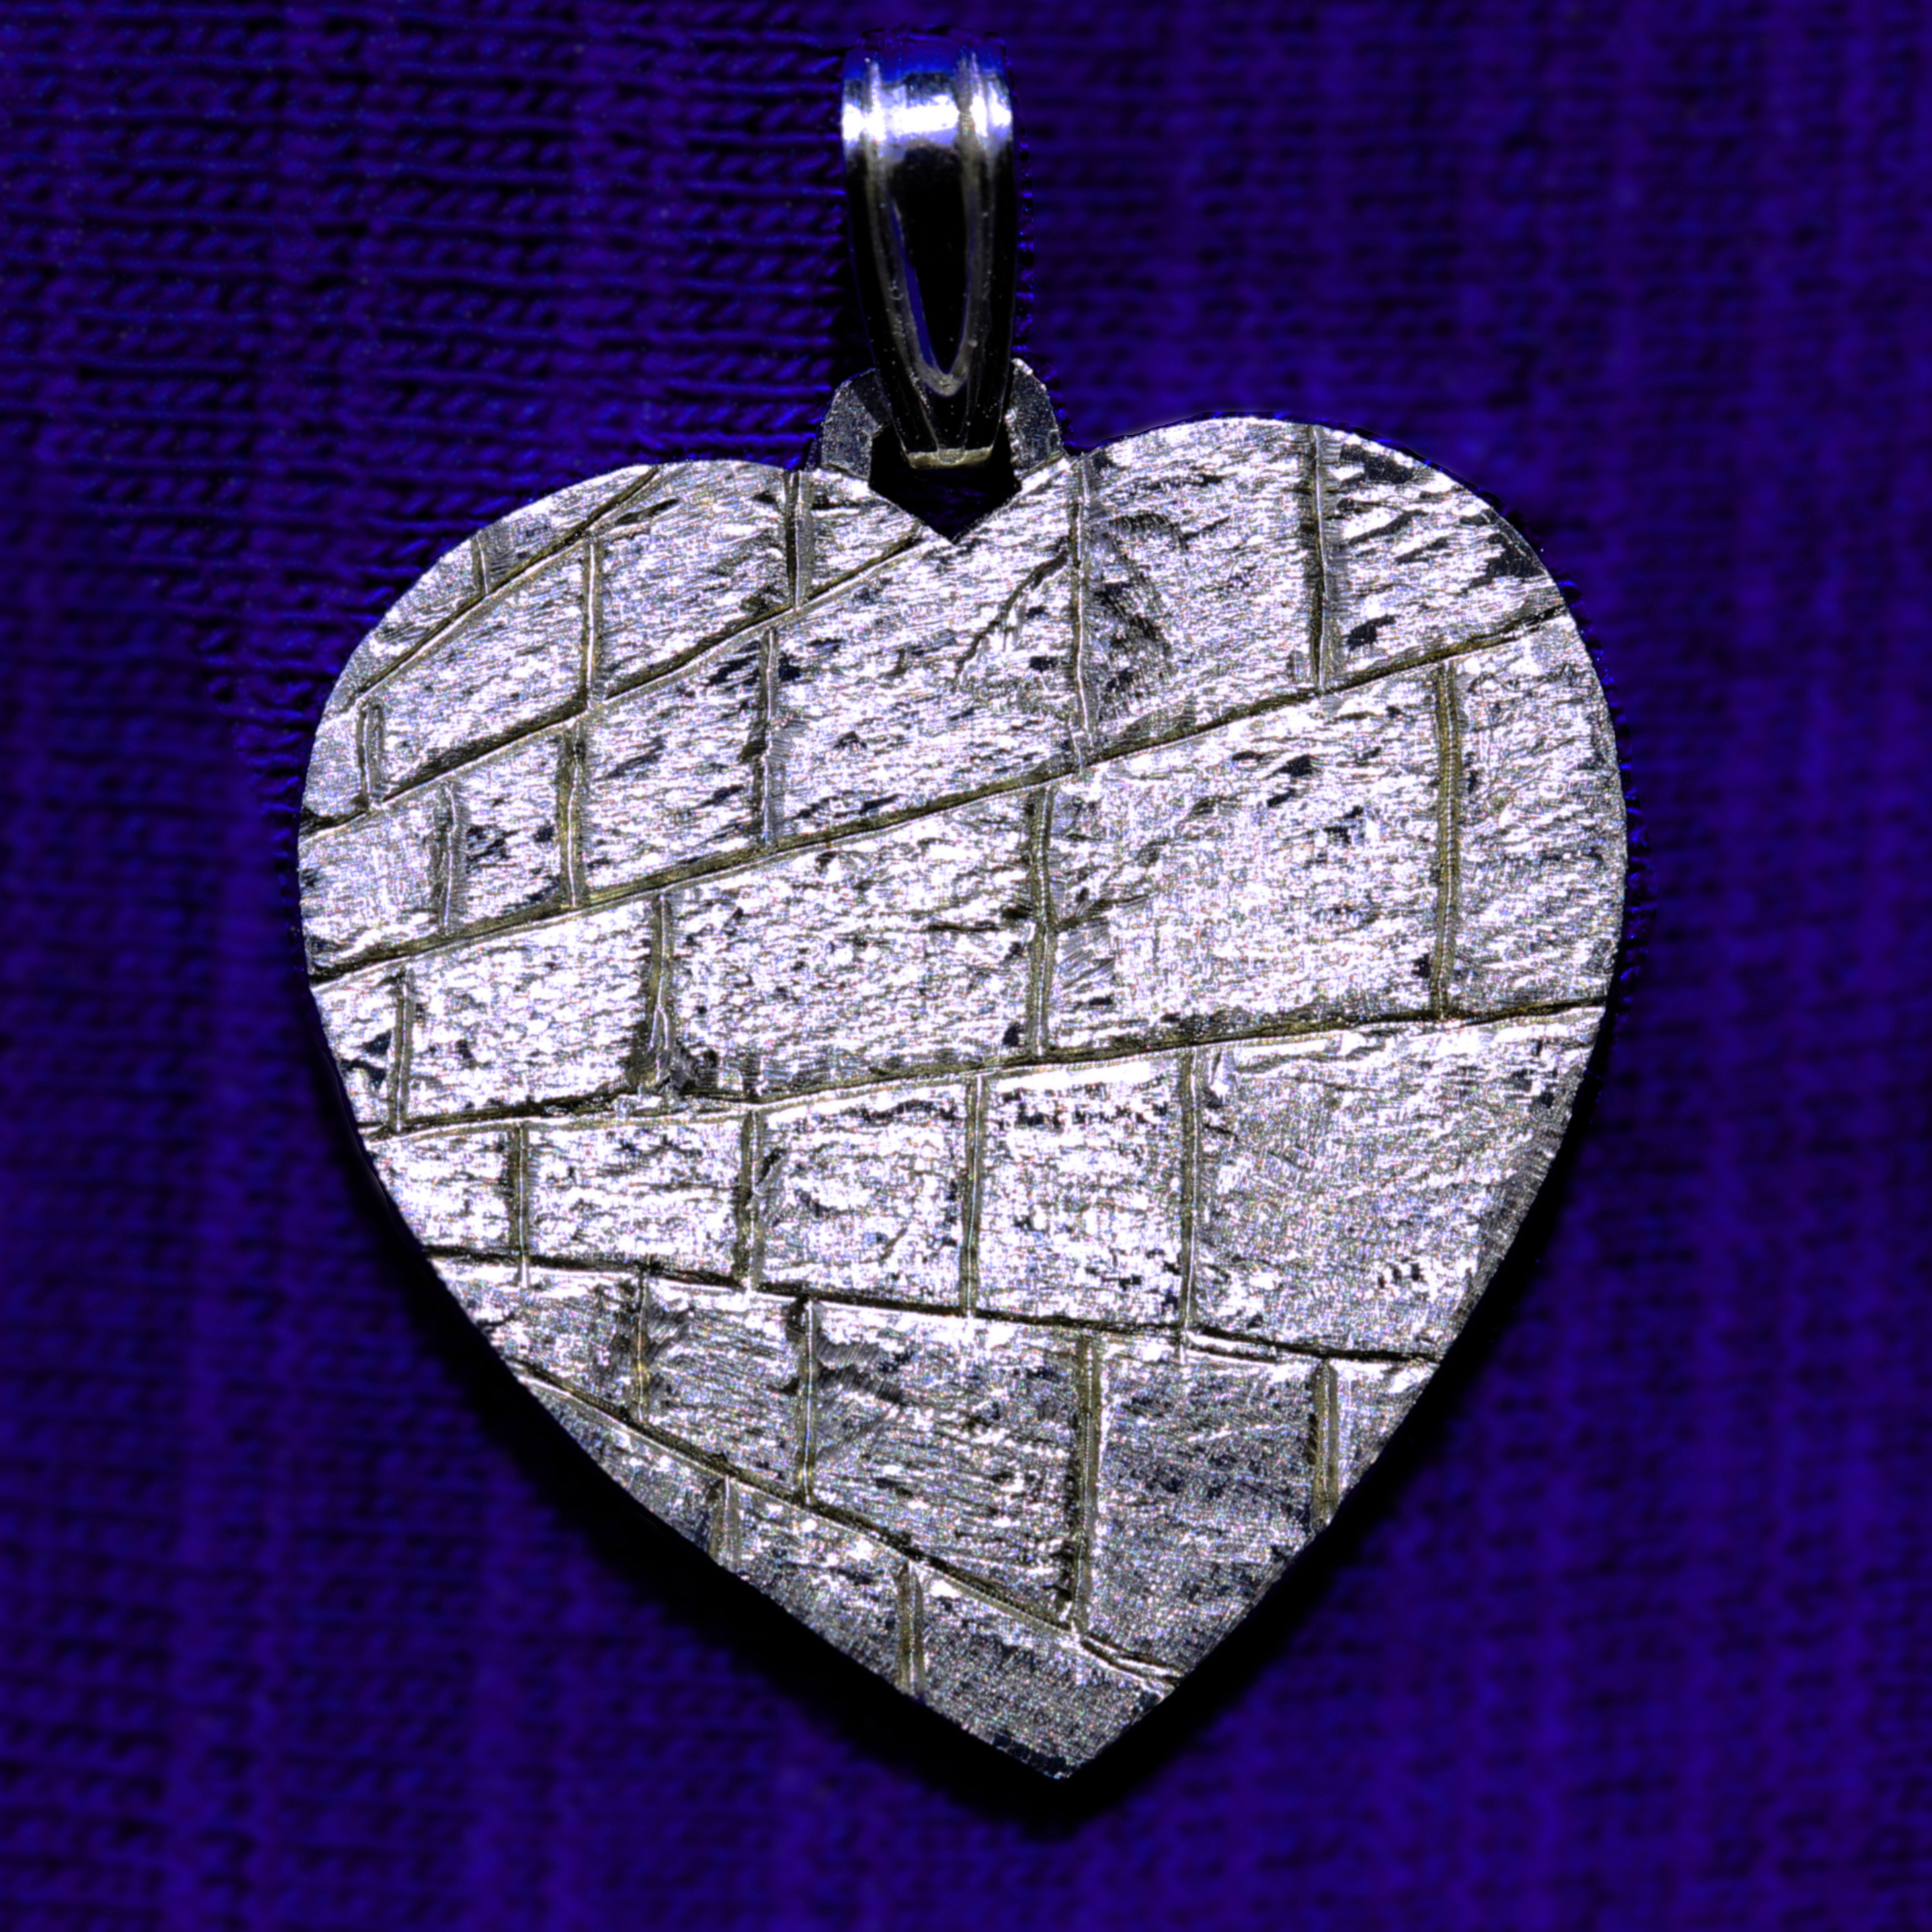 Wailing wall heart